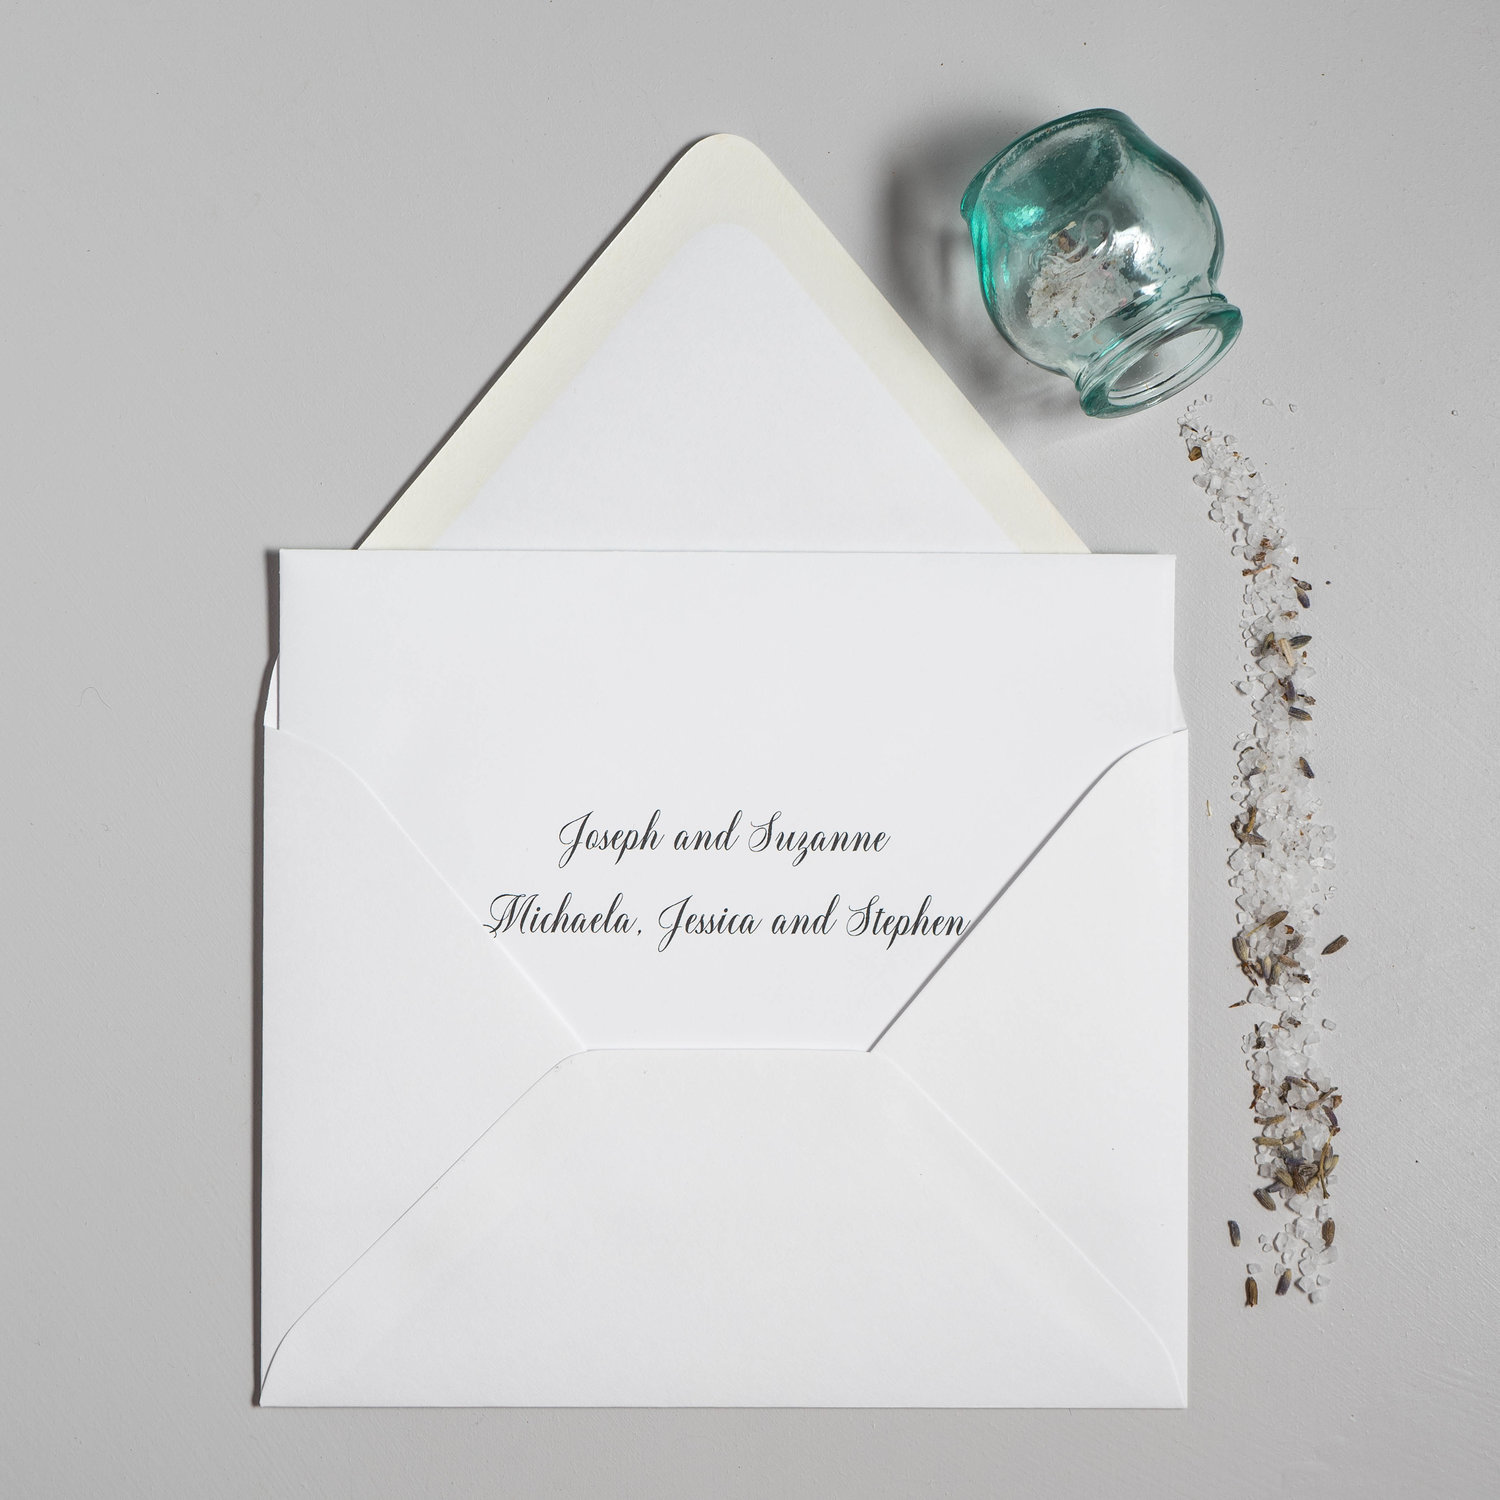 inner and outer envelopes for your wedding invitations just jurf